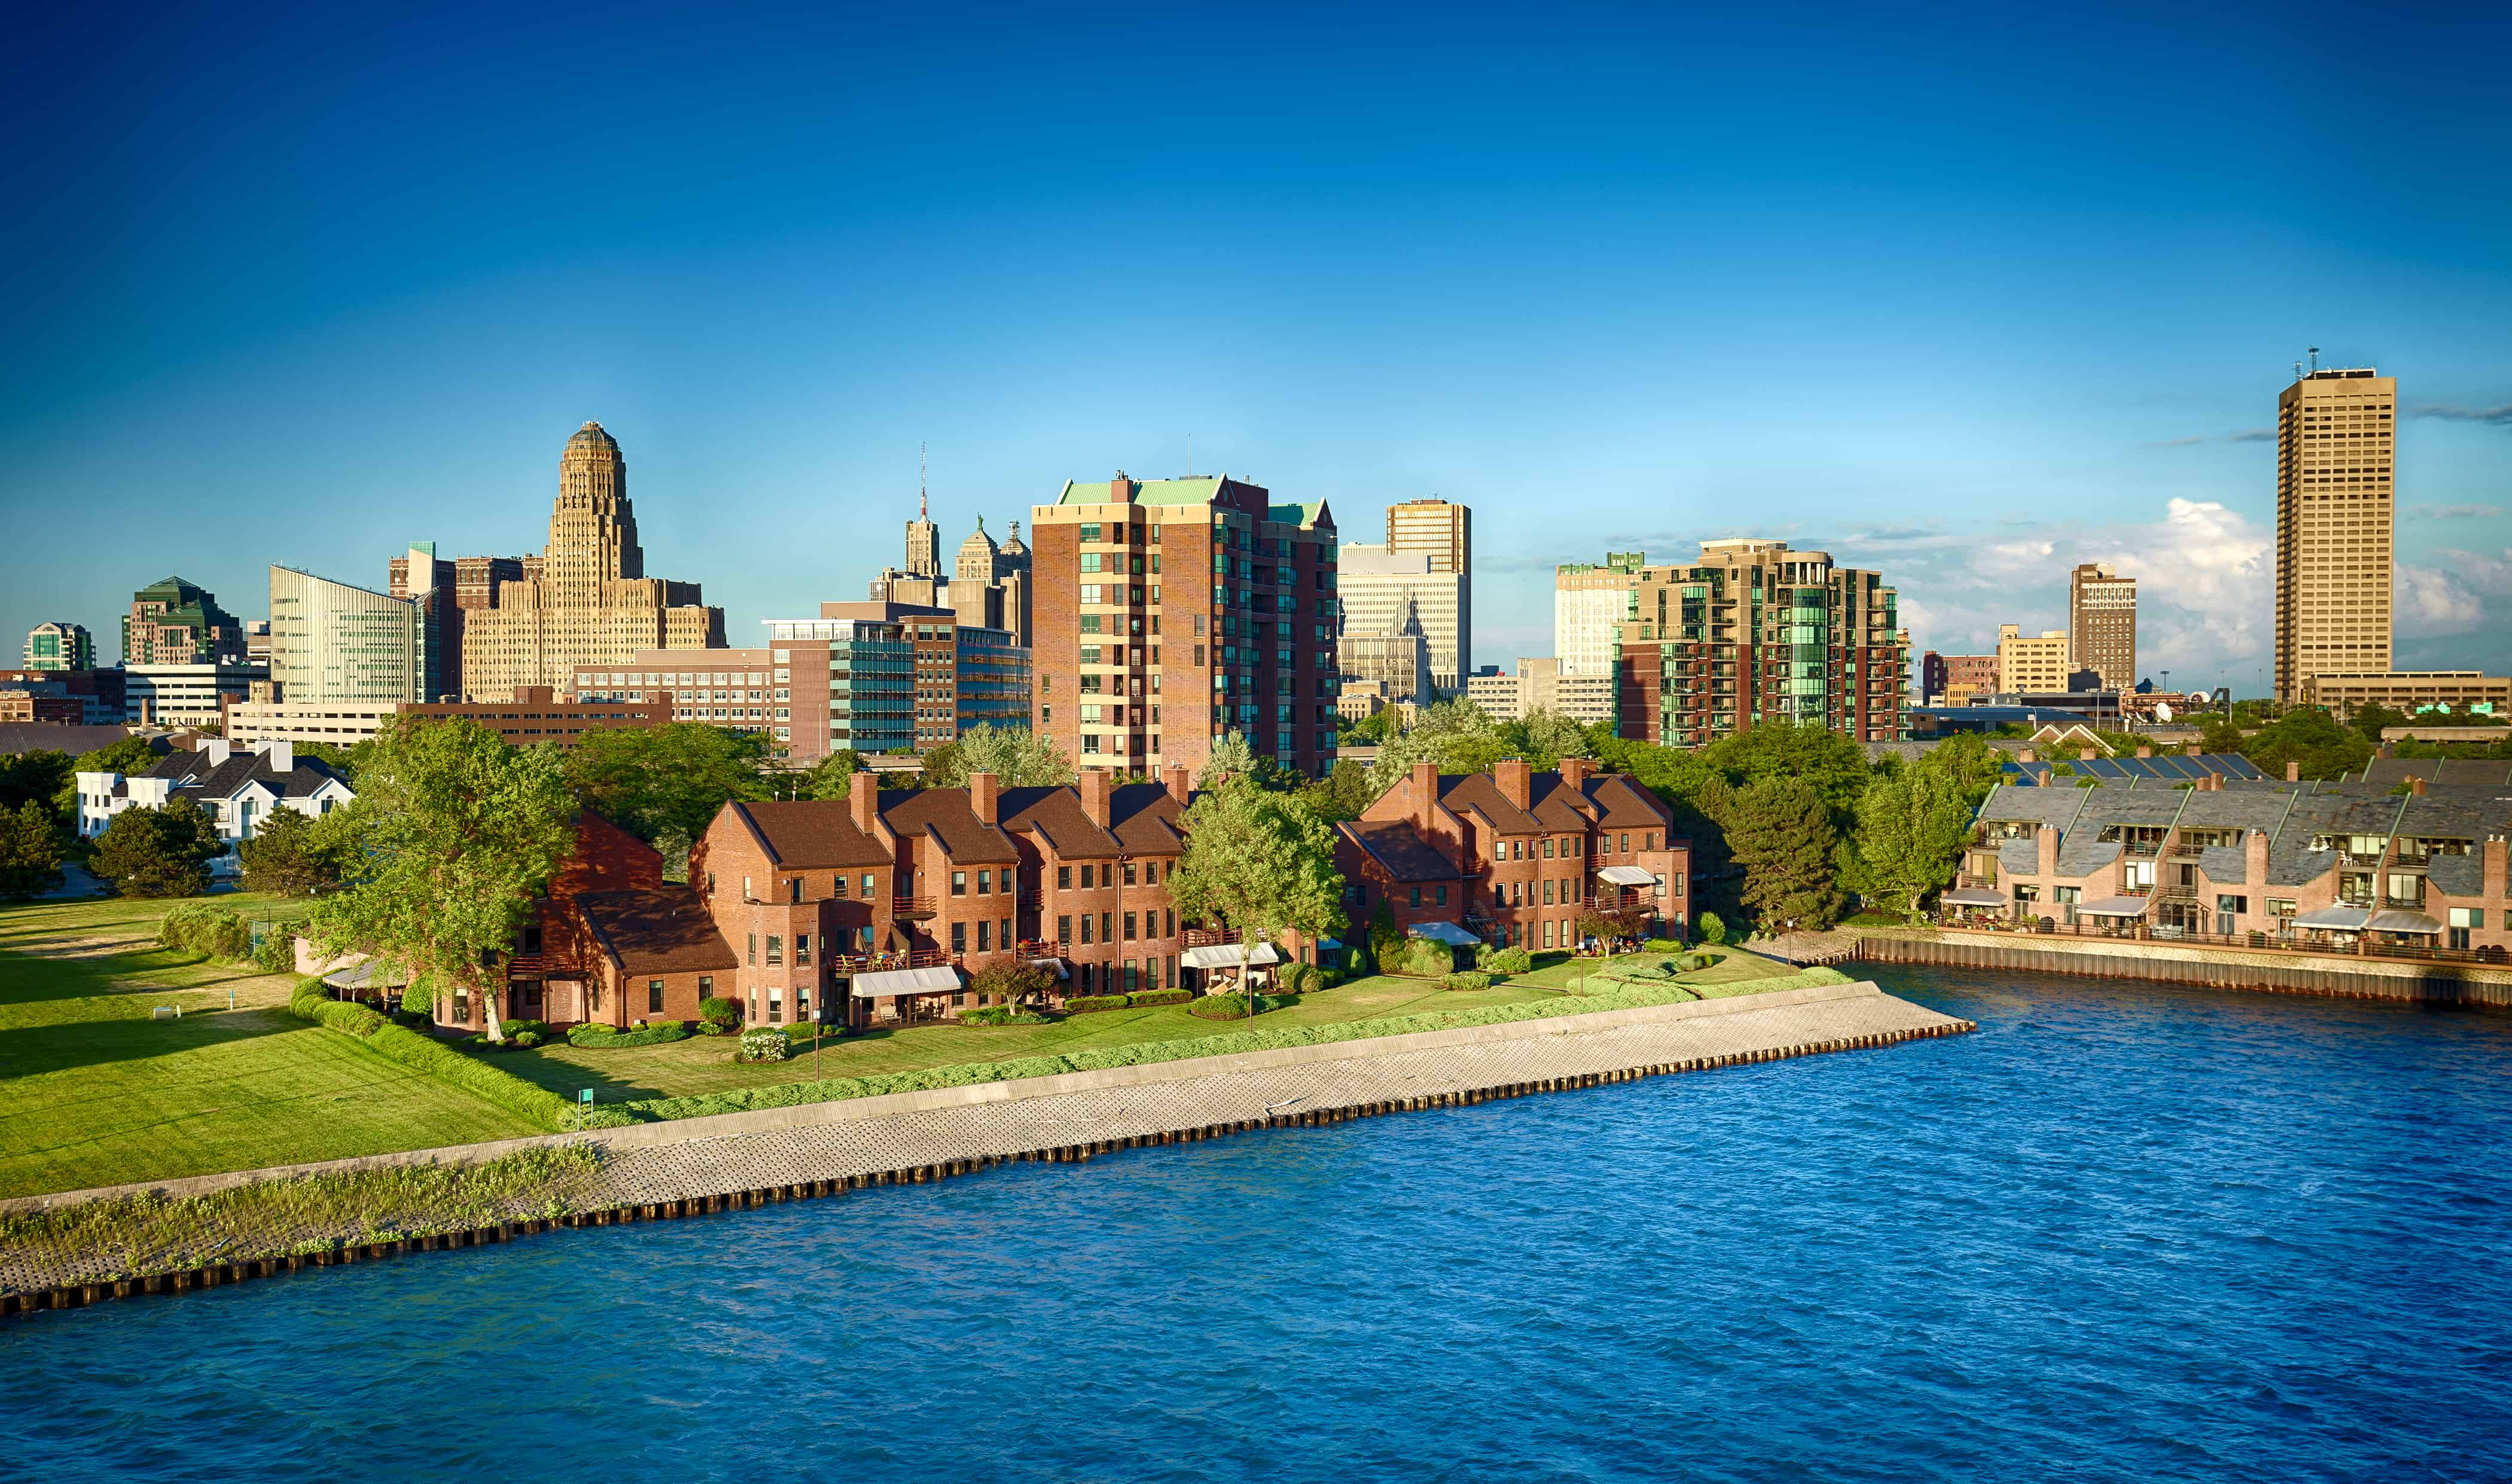 Buffalo, New York from the waterfront.